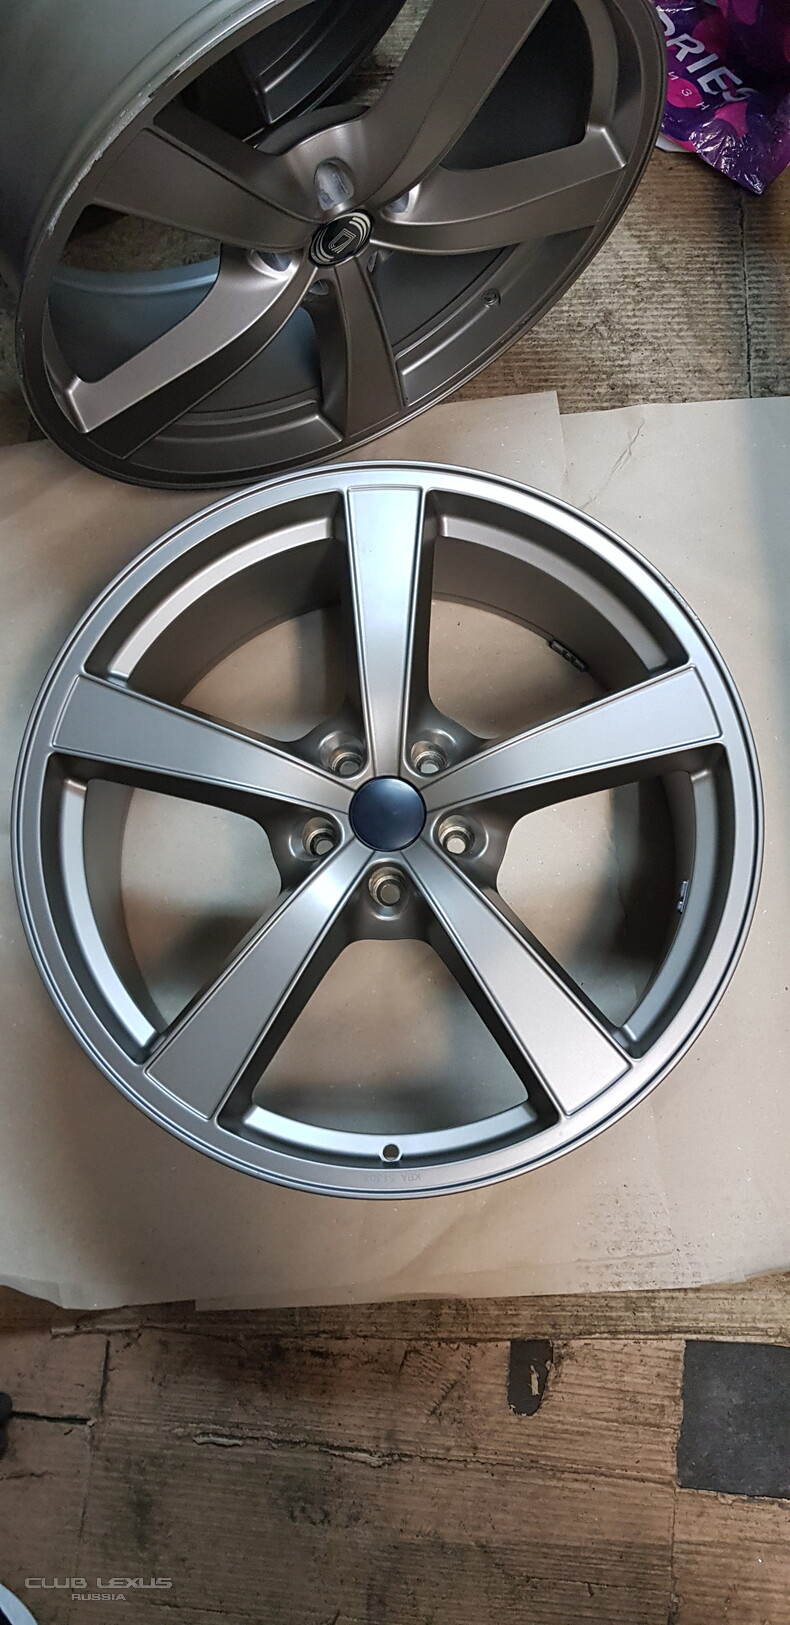 ПроданоДиски R21 Diewe wheels Germany 5x114,3 9J ET40